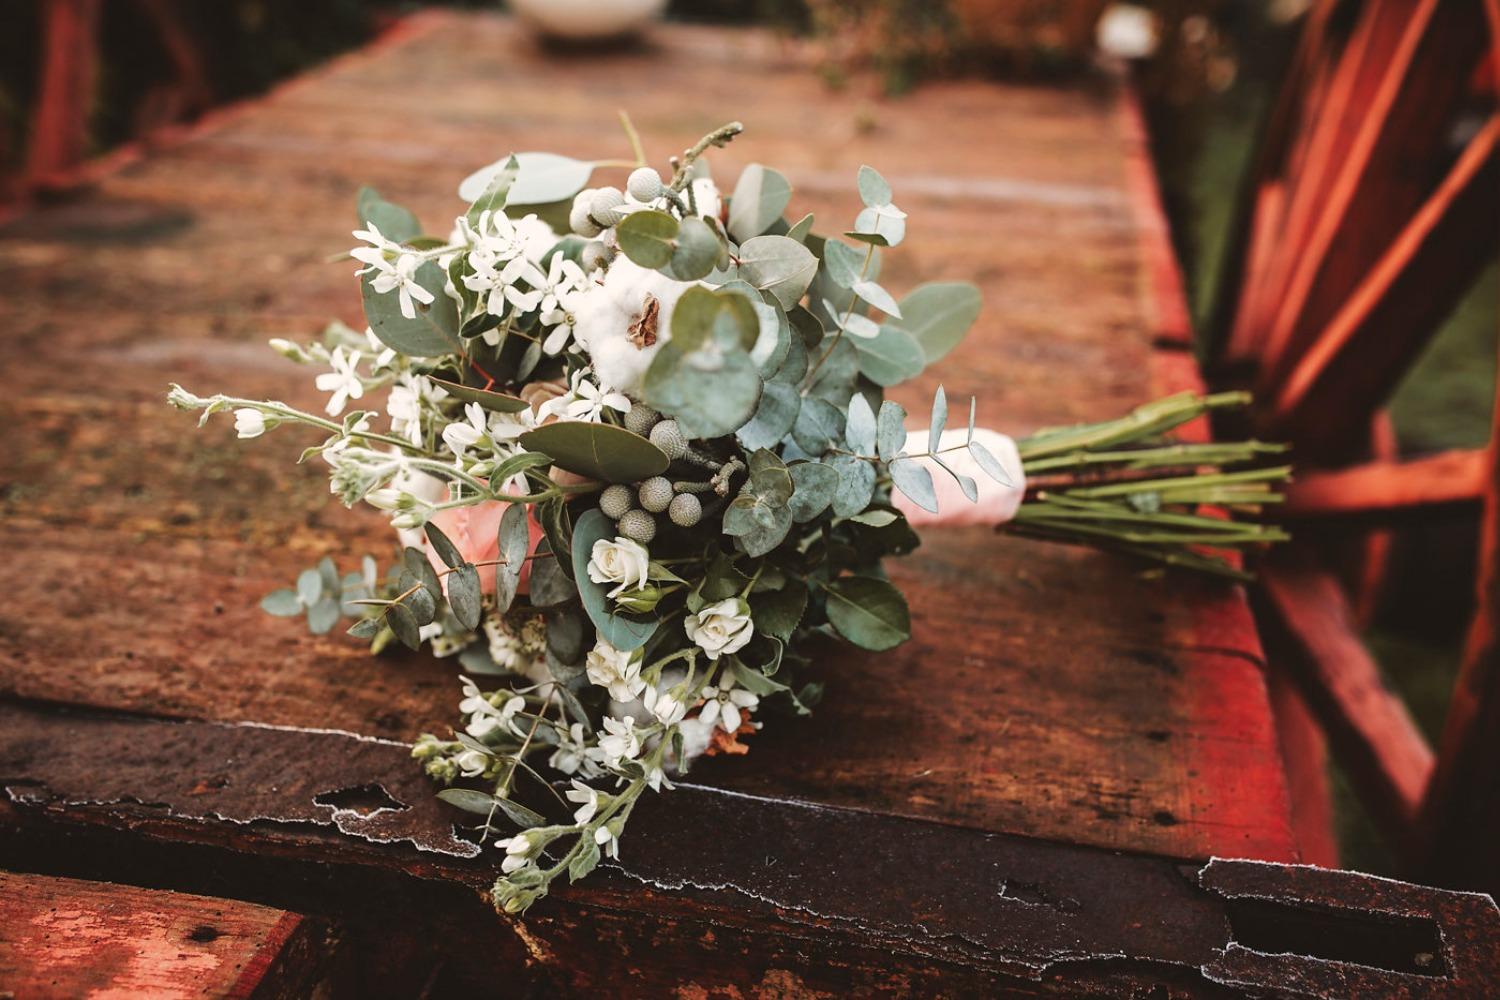 Romantic Vintage Garden Wedding Inspiration from Spain